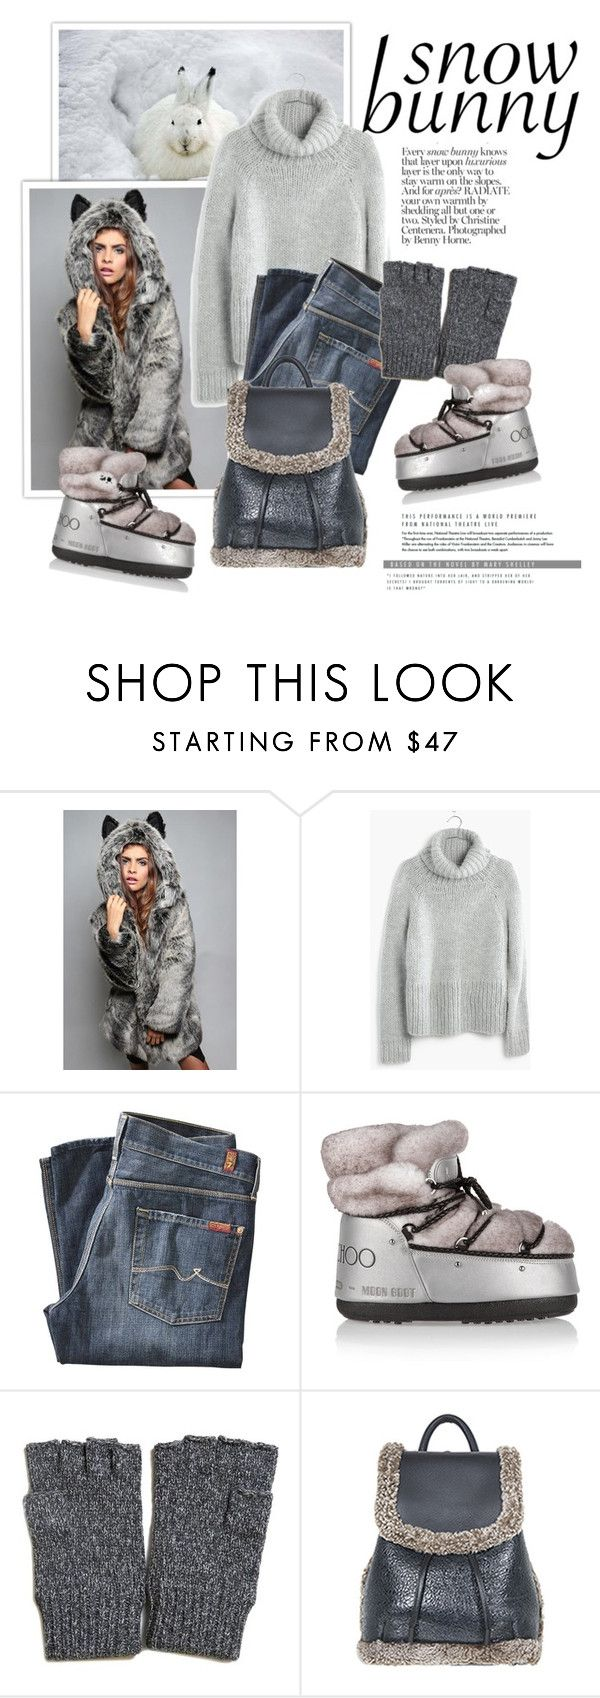 """""""Winter Fun: Snow Bunny Style"""" by cruzeirodotejo ❤ liked on Polyvore featuring Madewell, 7 For All Mankind, Moon Boot, rag & bone and snowbunny"""